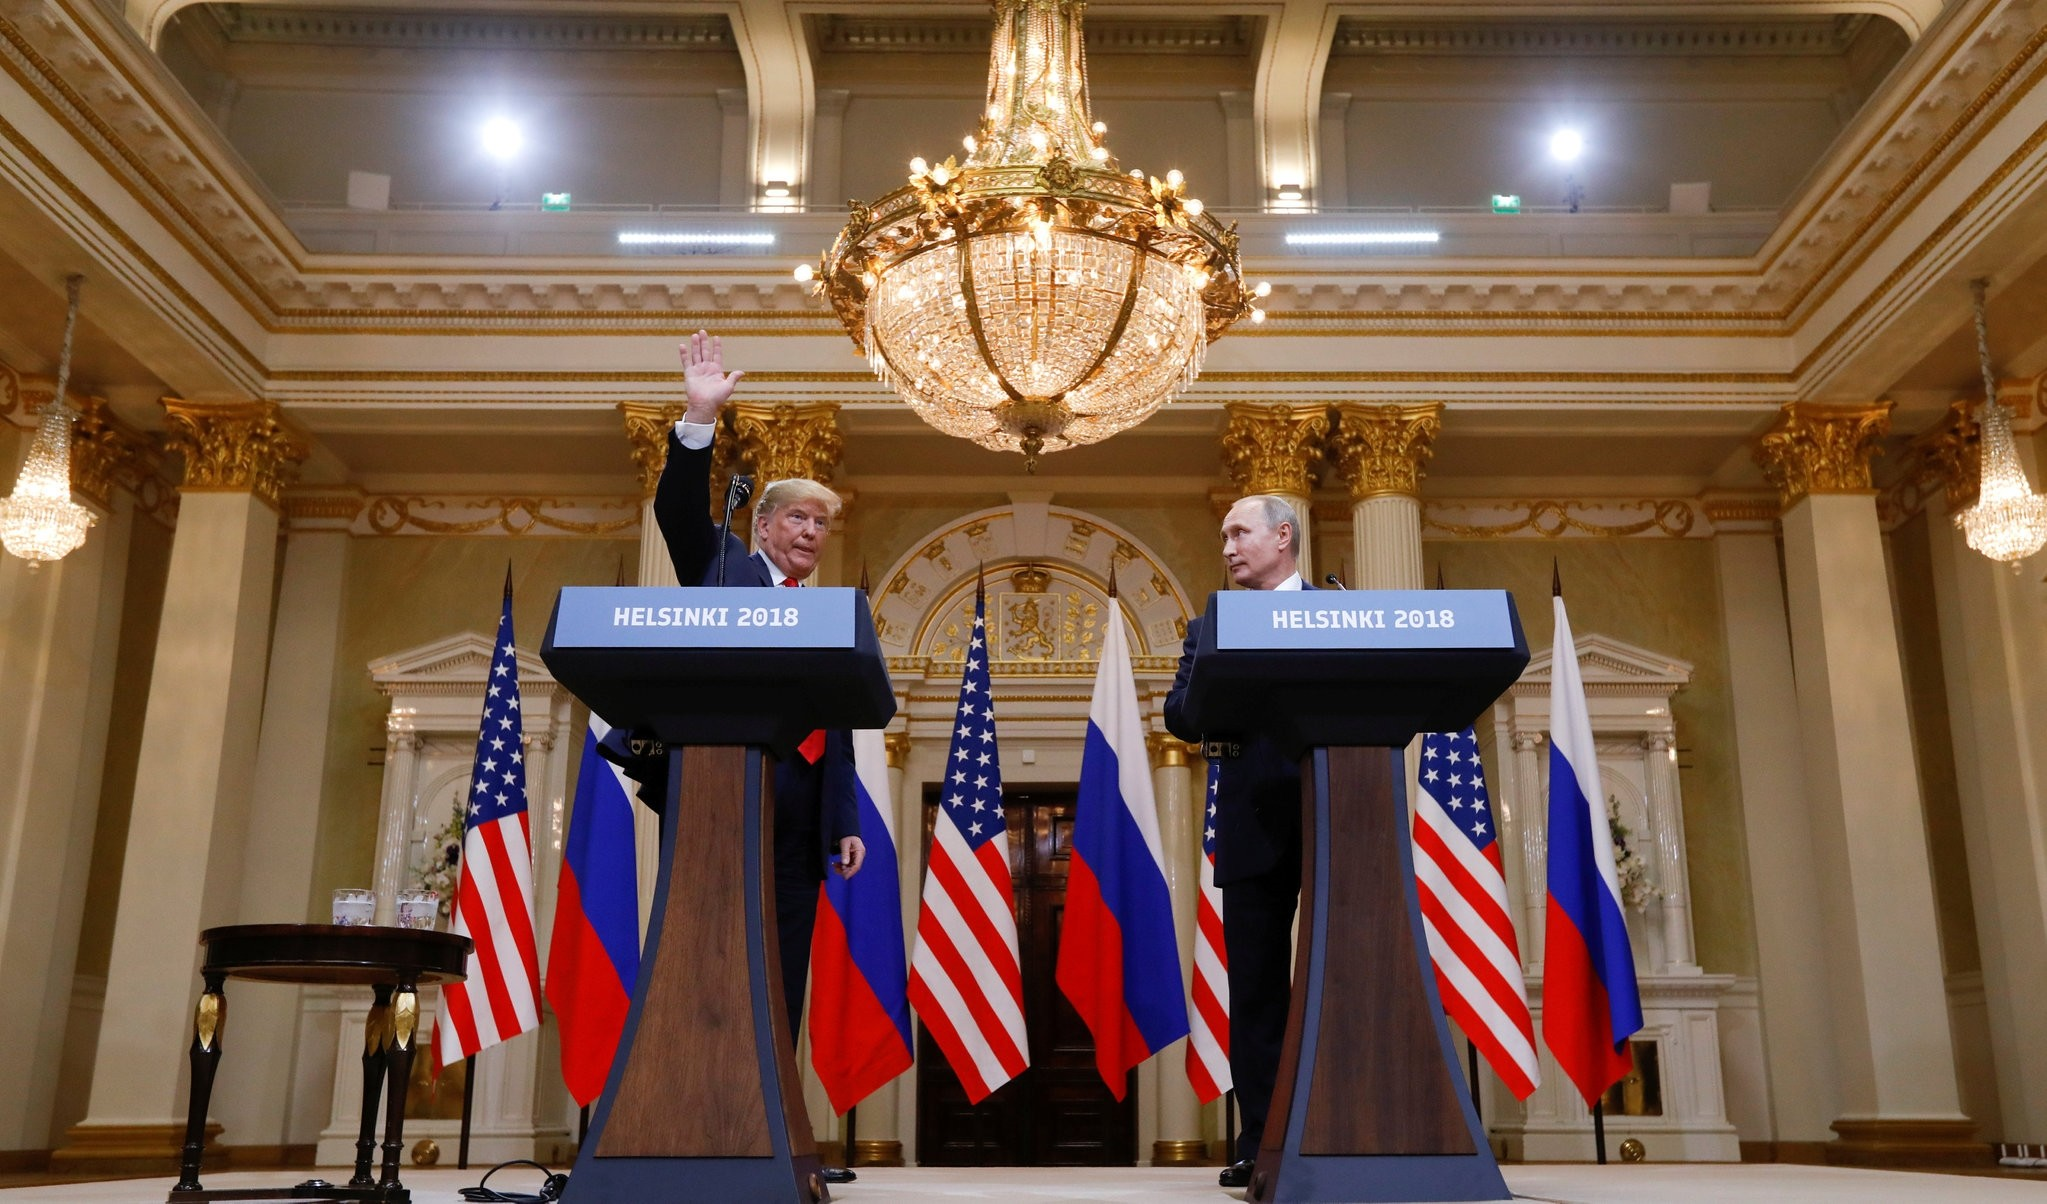 U.S. President Trump waves after a joint news conference with Russia's President Putin after their meeting in Helsinki, Finland, July 16.